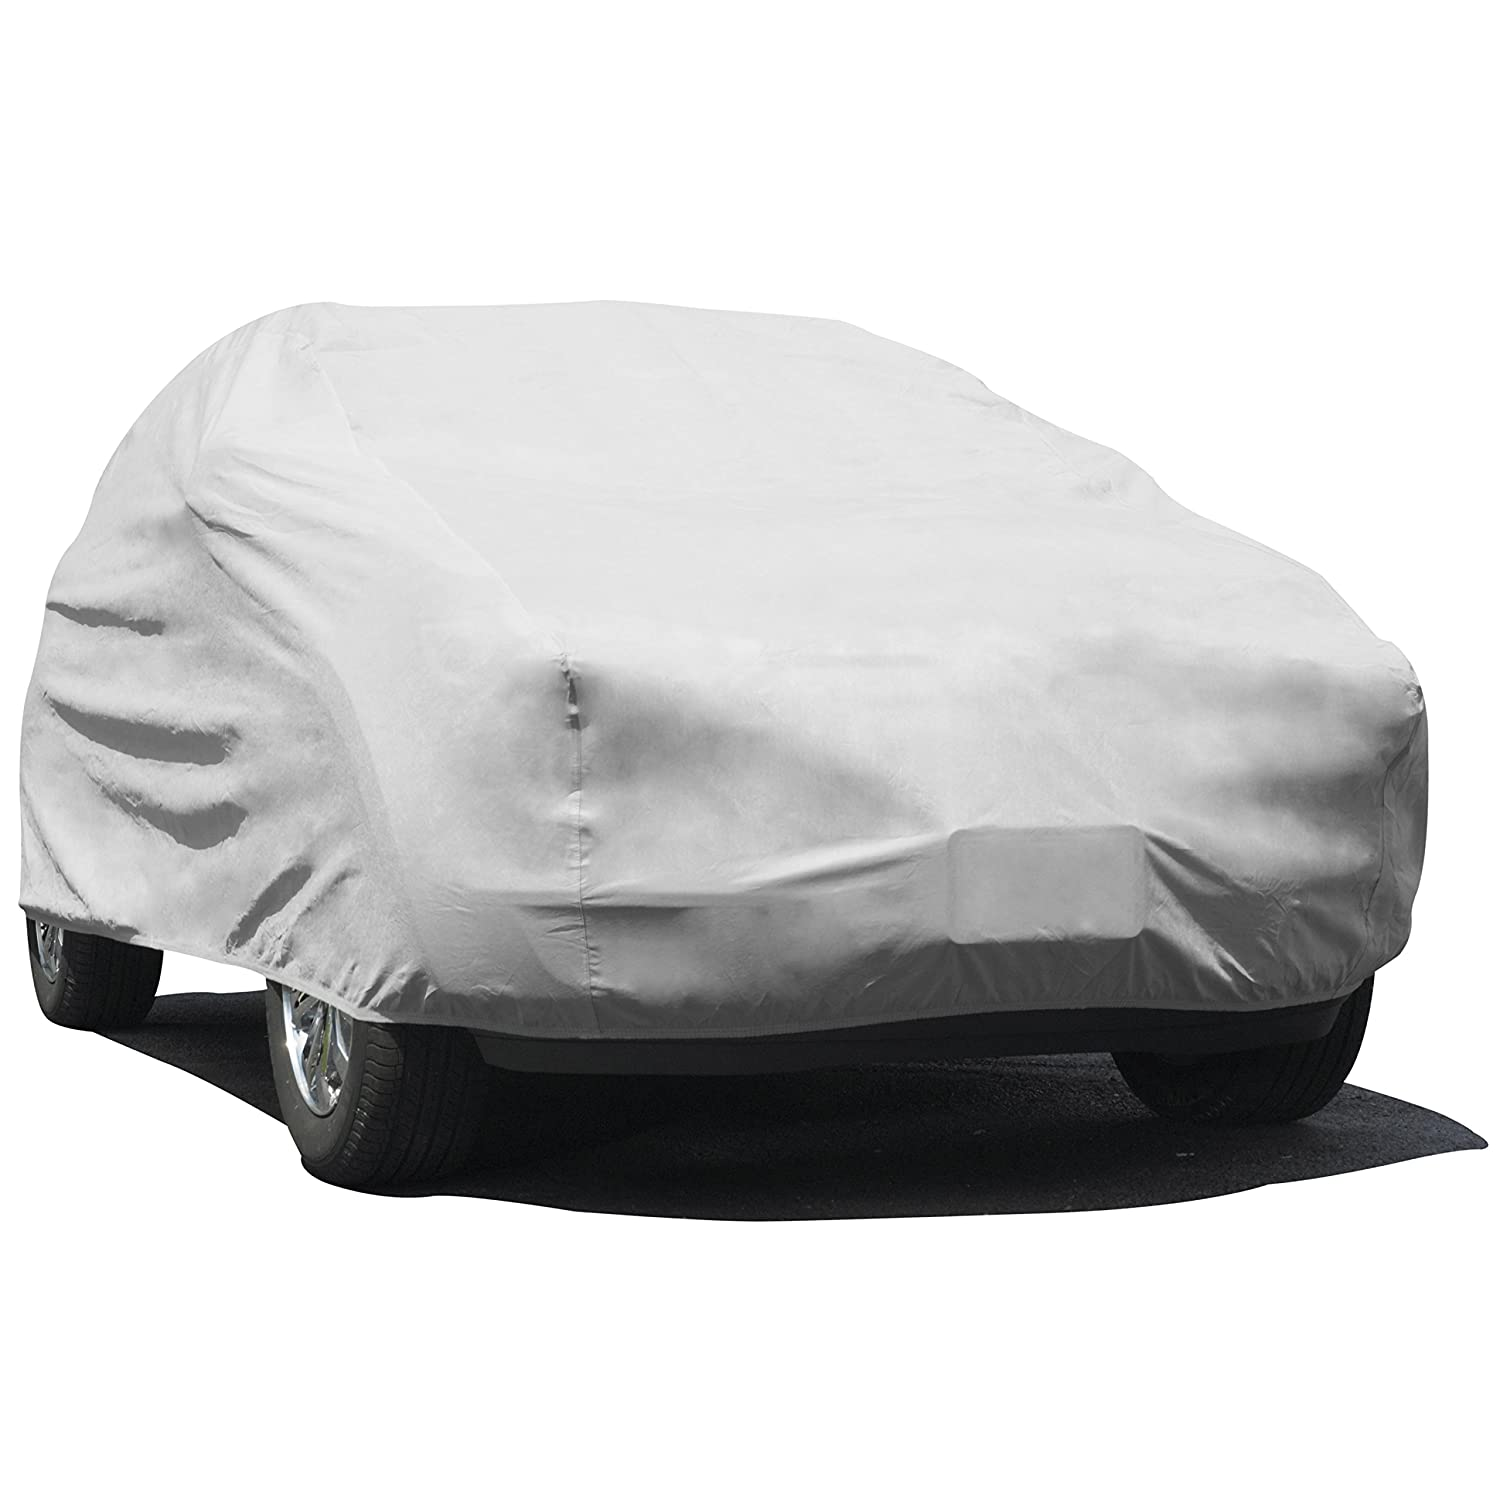 "Budge UB-3 Lite SUV Cover Indoor L x 68"" W x 67.5"" H Dustproof UV Resistant Fits Full Size 229"", Gray"